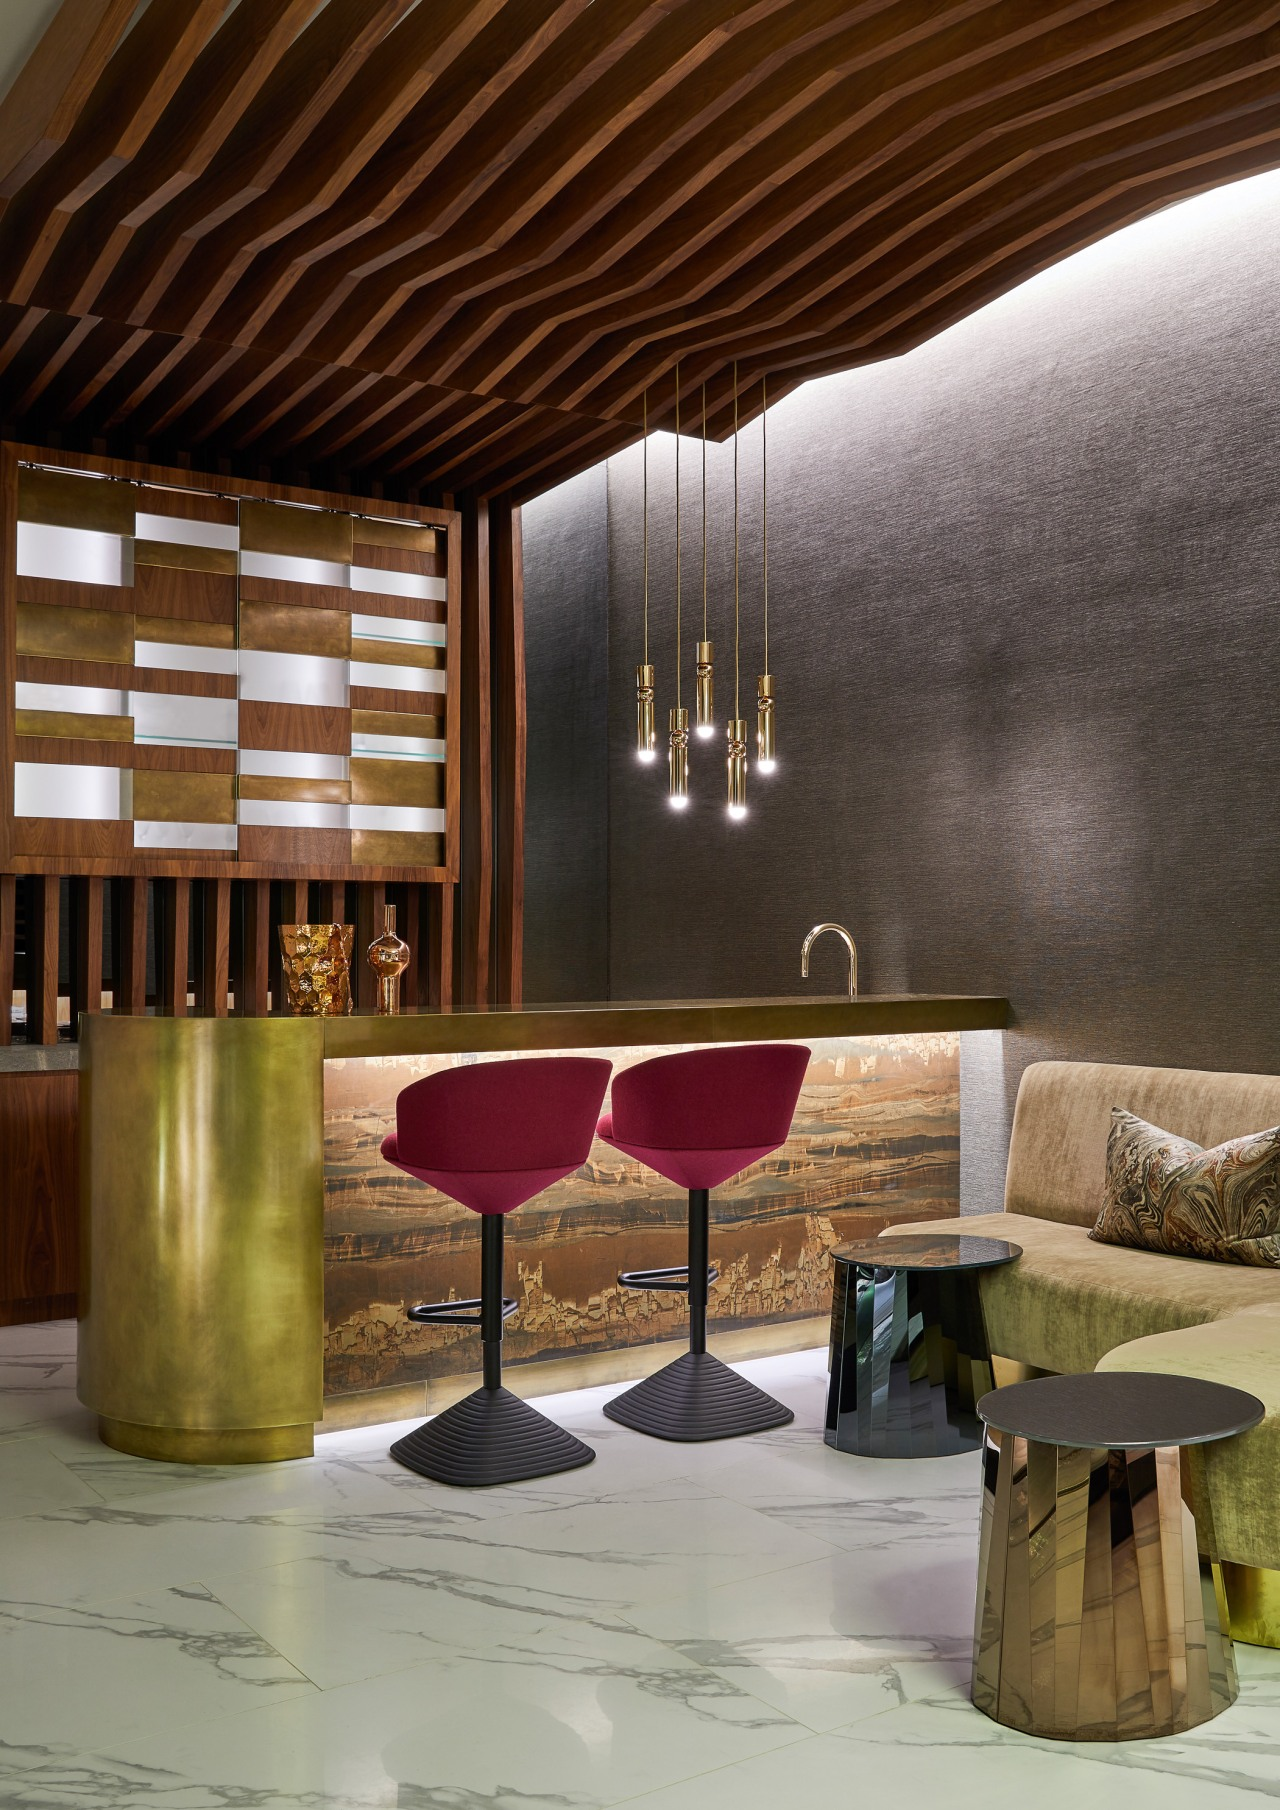 The combination of material and form is at architecture, building, ceiling, coffee table, furniture, interior design, lobby, material property, room, table, brown, gray